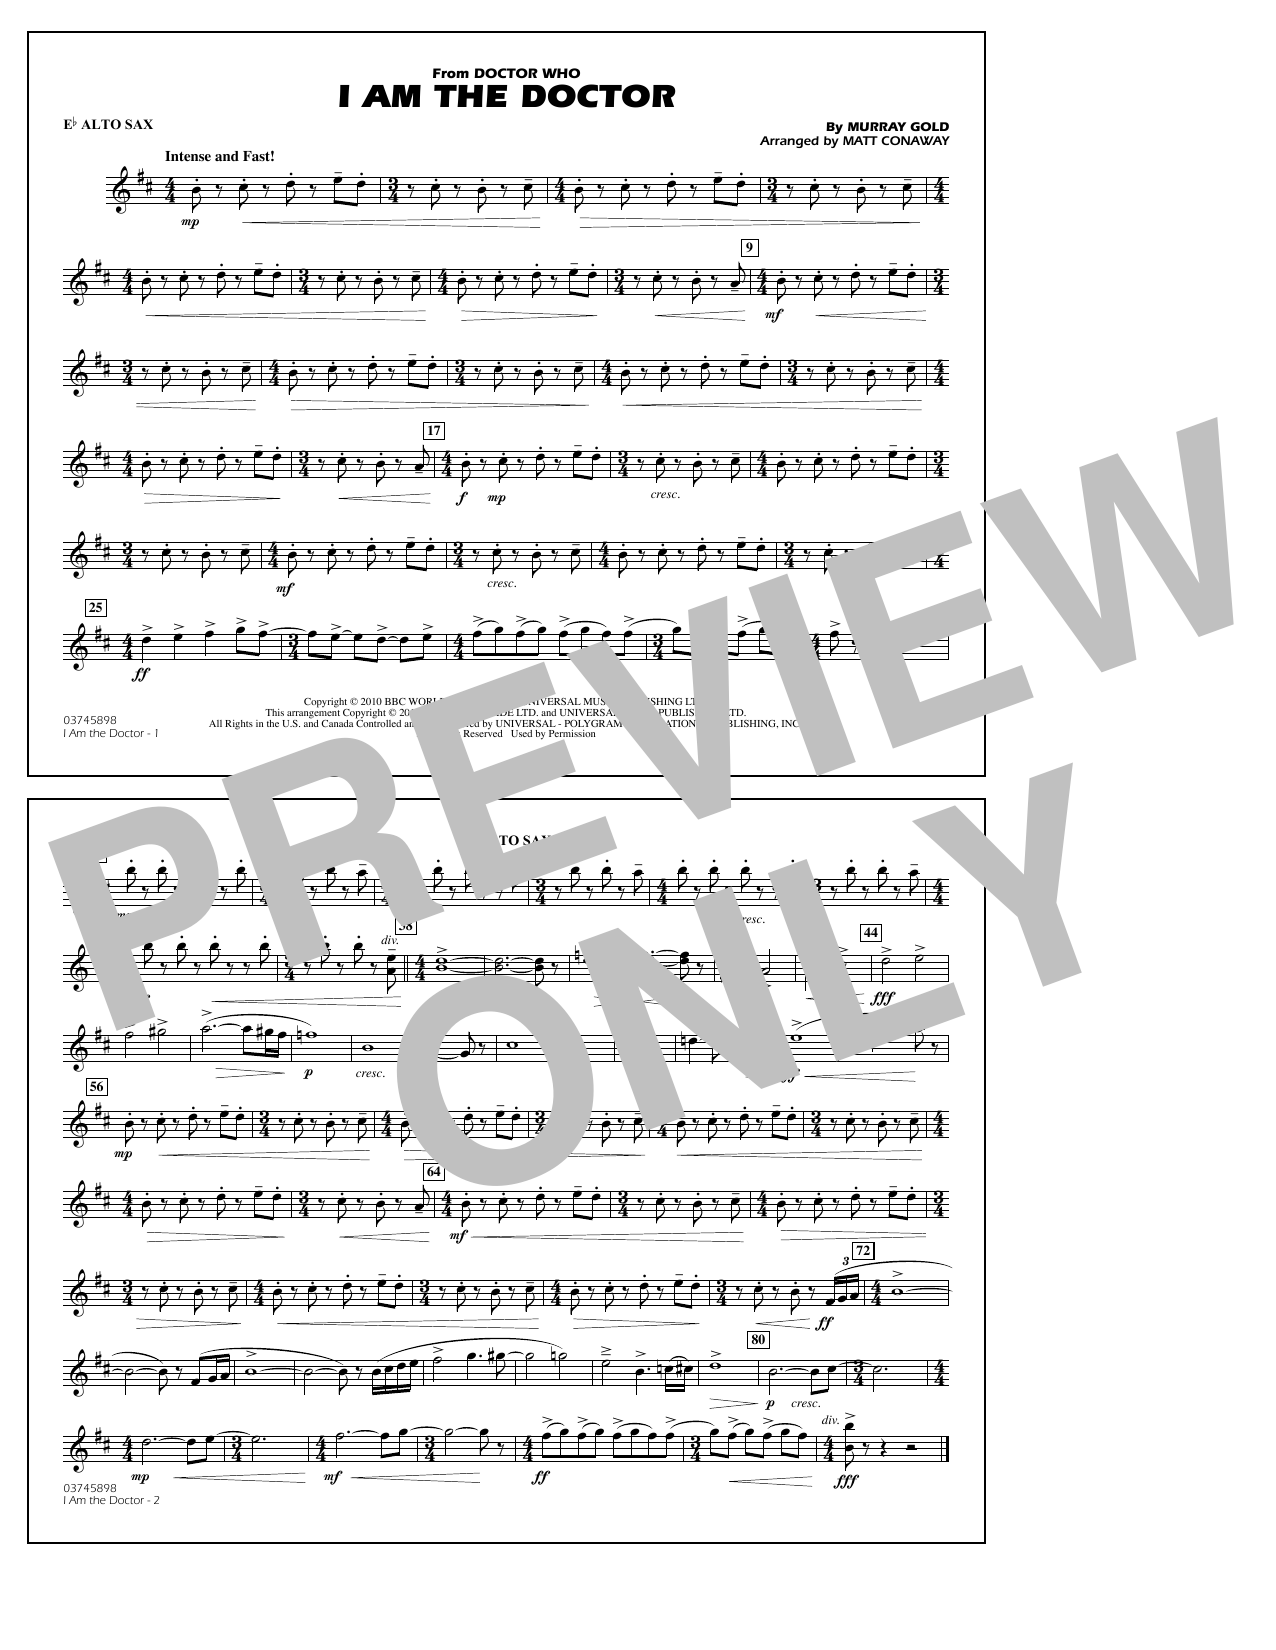 Matt Conaway I Am the Doctor (from Doctor Who) - Eb Alto Sax sheet music notes and chords